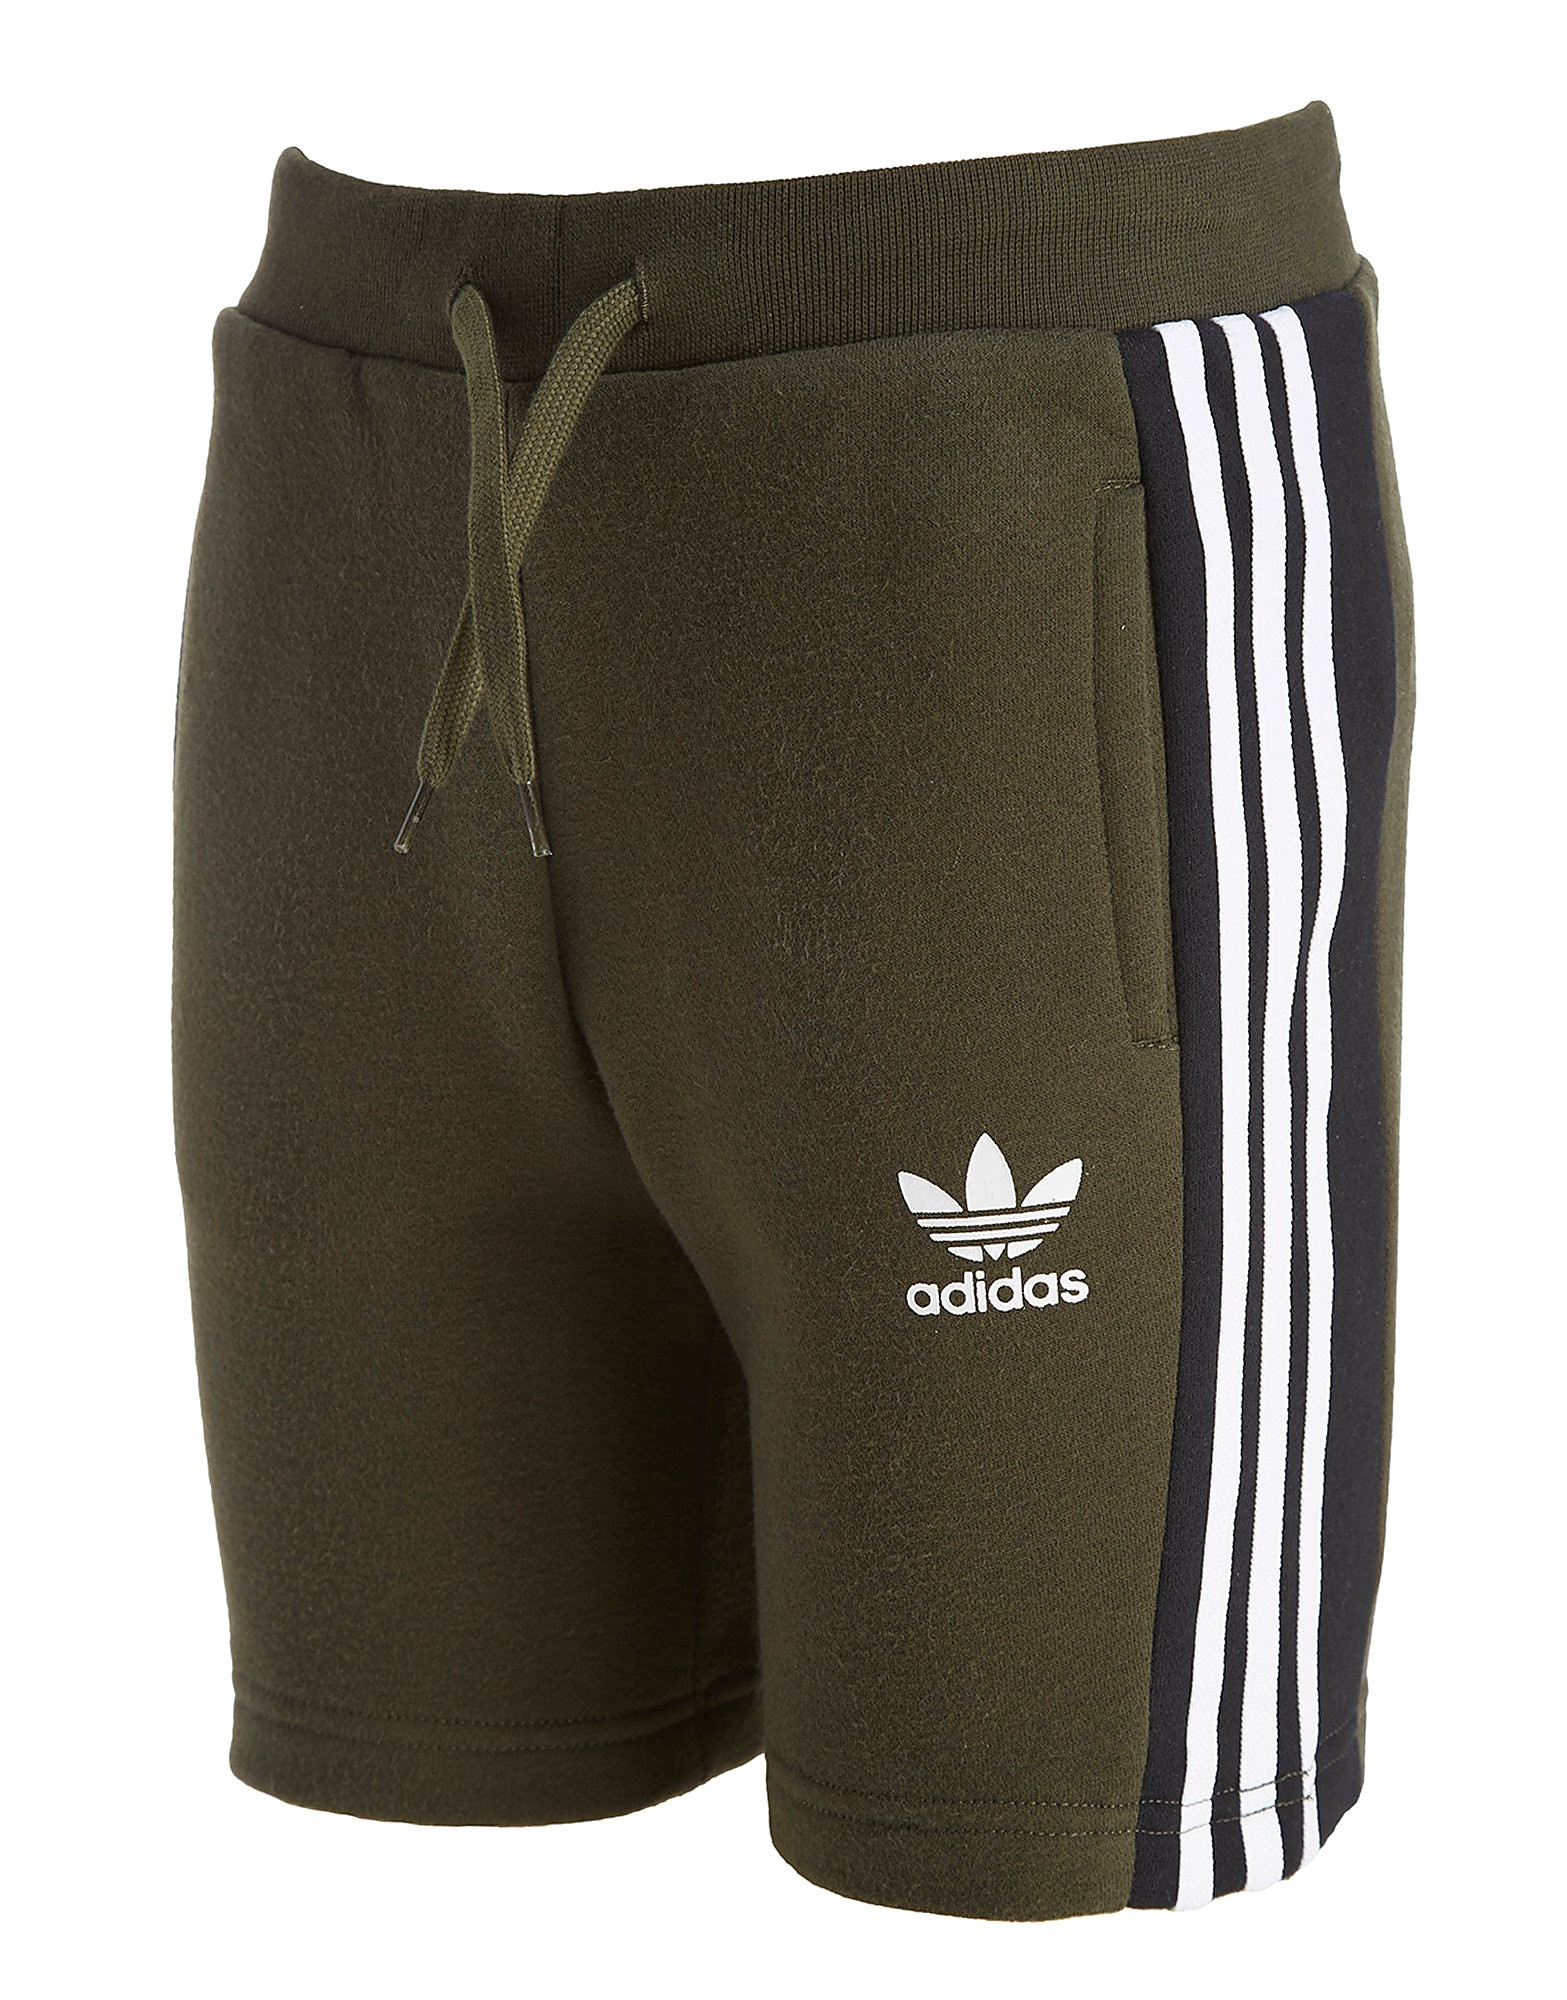 adidas Originals 3-Stripes Fleece Trefoil Shorts Junior